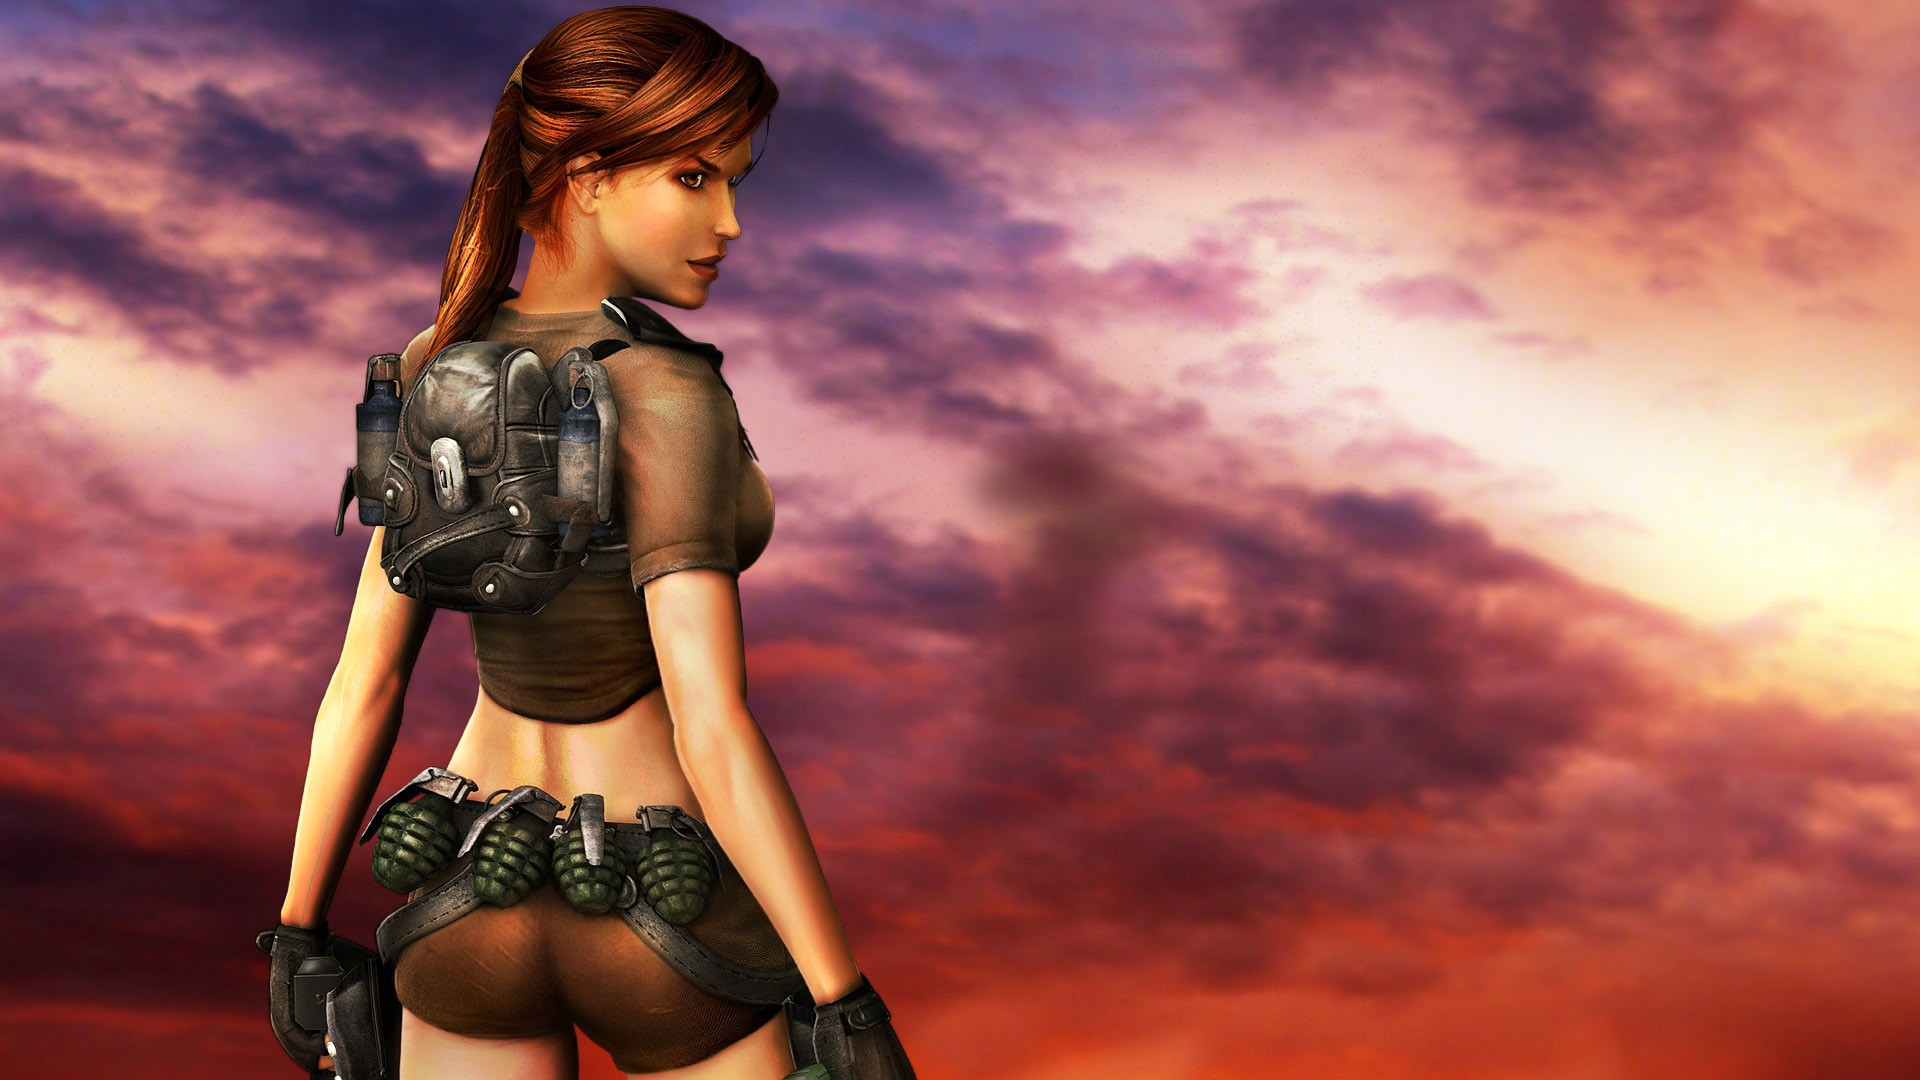 Page 3 Of 15 For 15 Most Sexy Pictures Of Lara Croft Gamers Decide